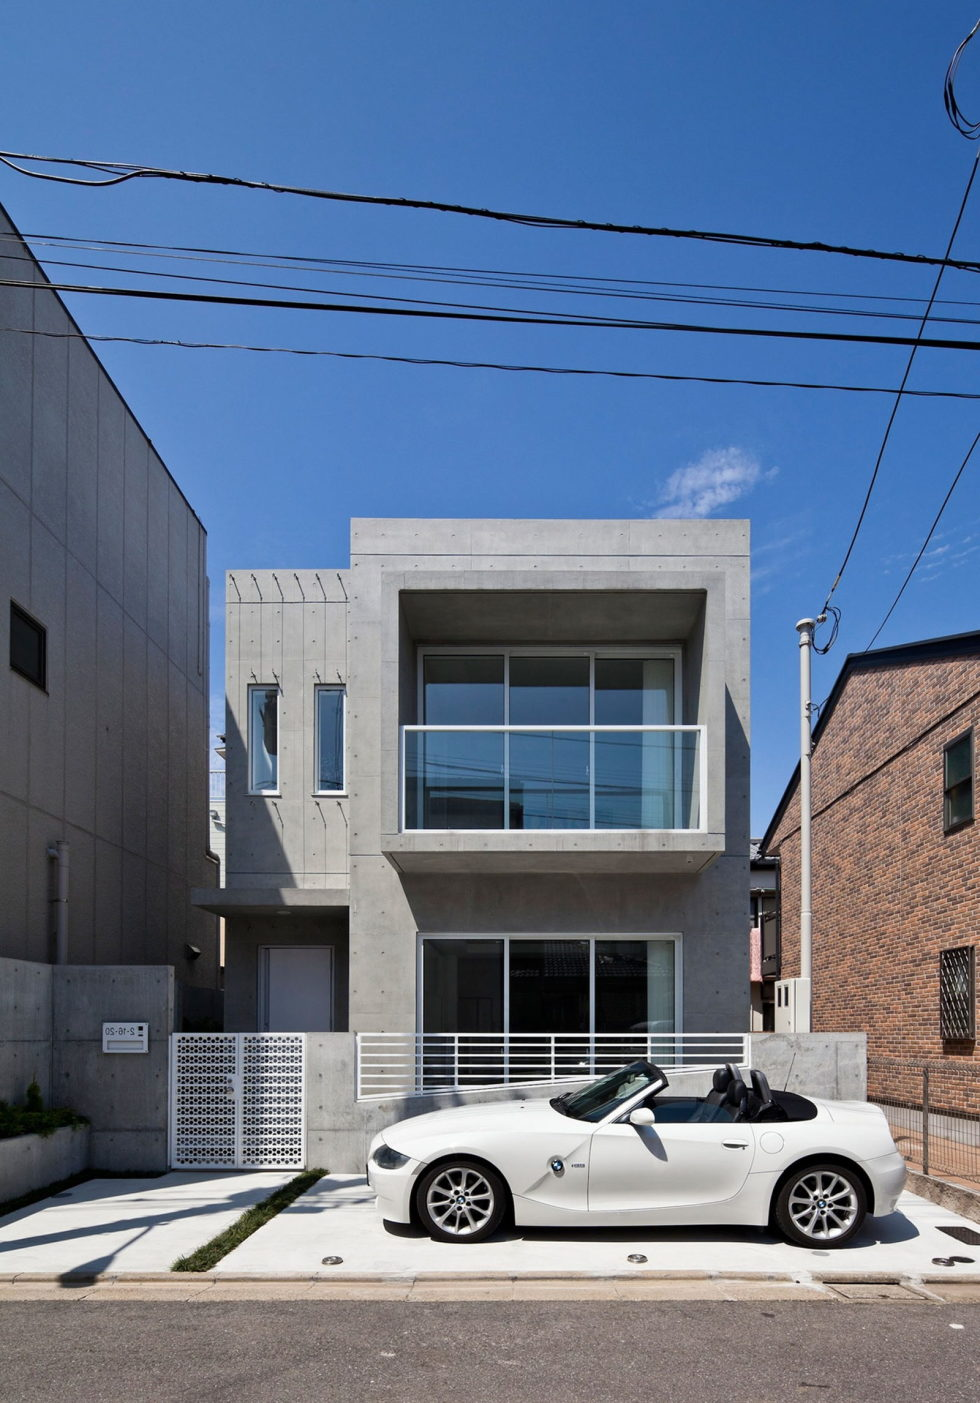 Zen Design House From RCK Design Studio In Japan 2